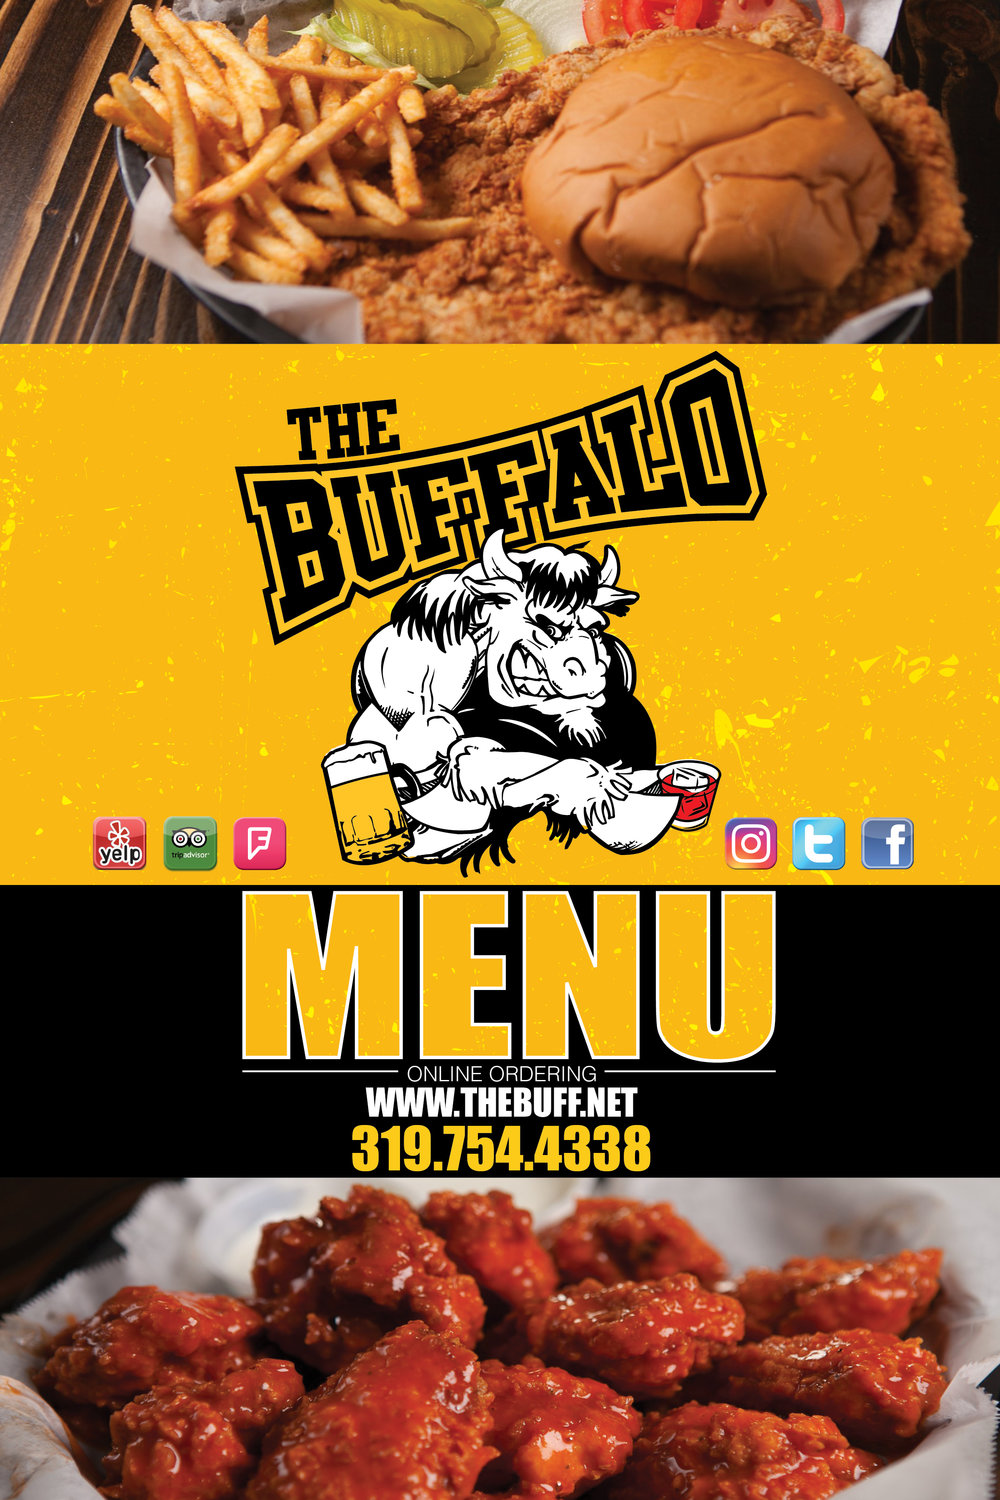 The Buffalo Menu.jpg